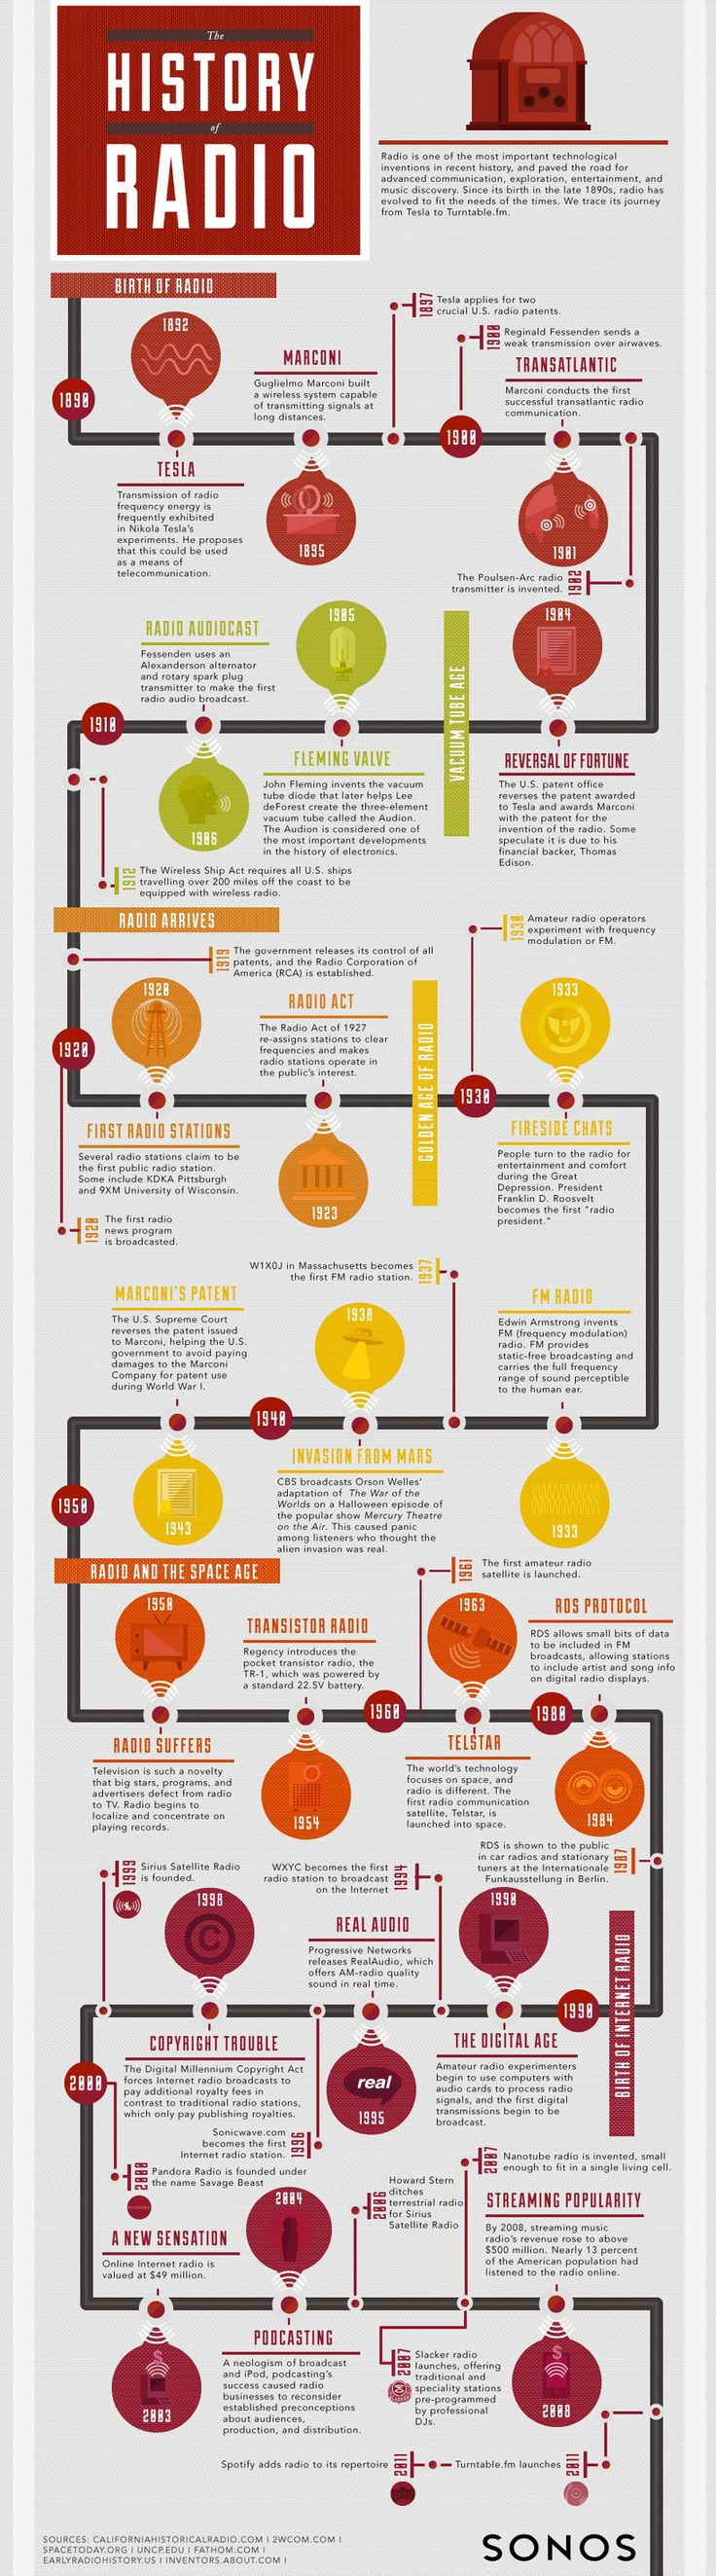 The History of Radio.